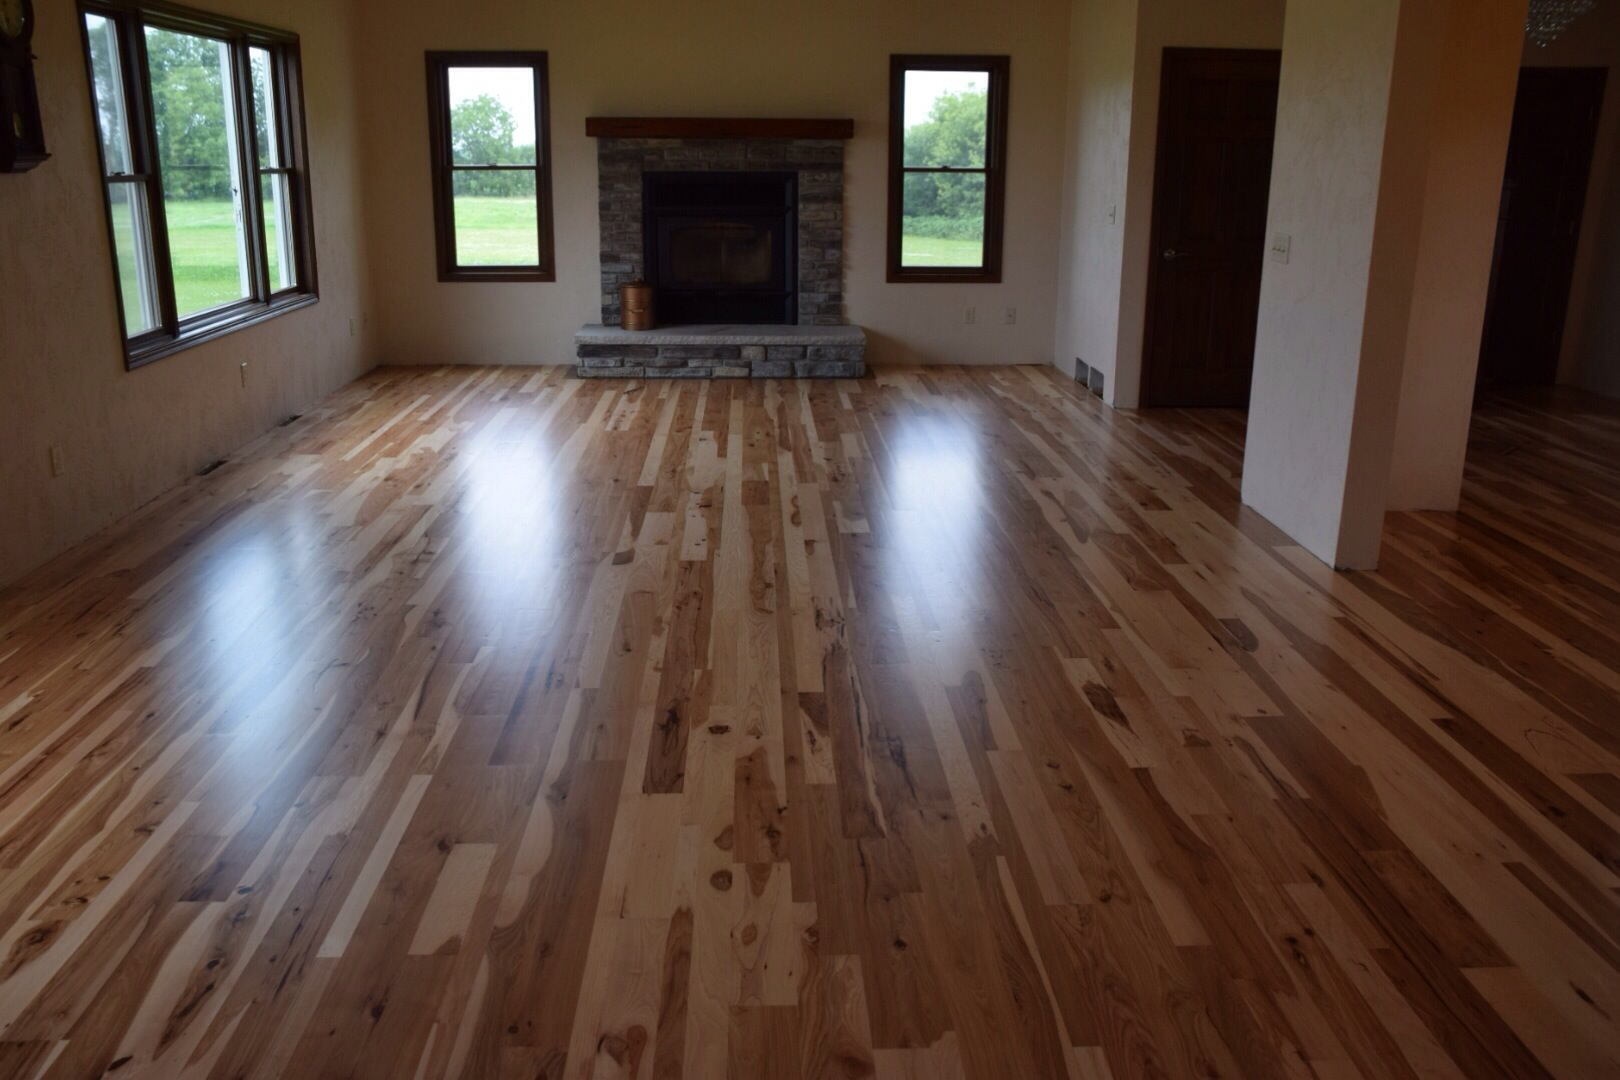 Great examples of hardwood floors